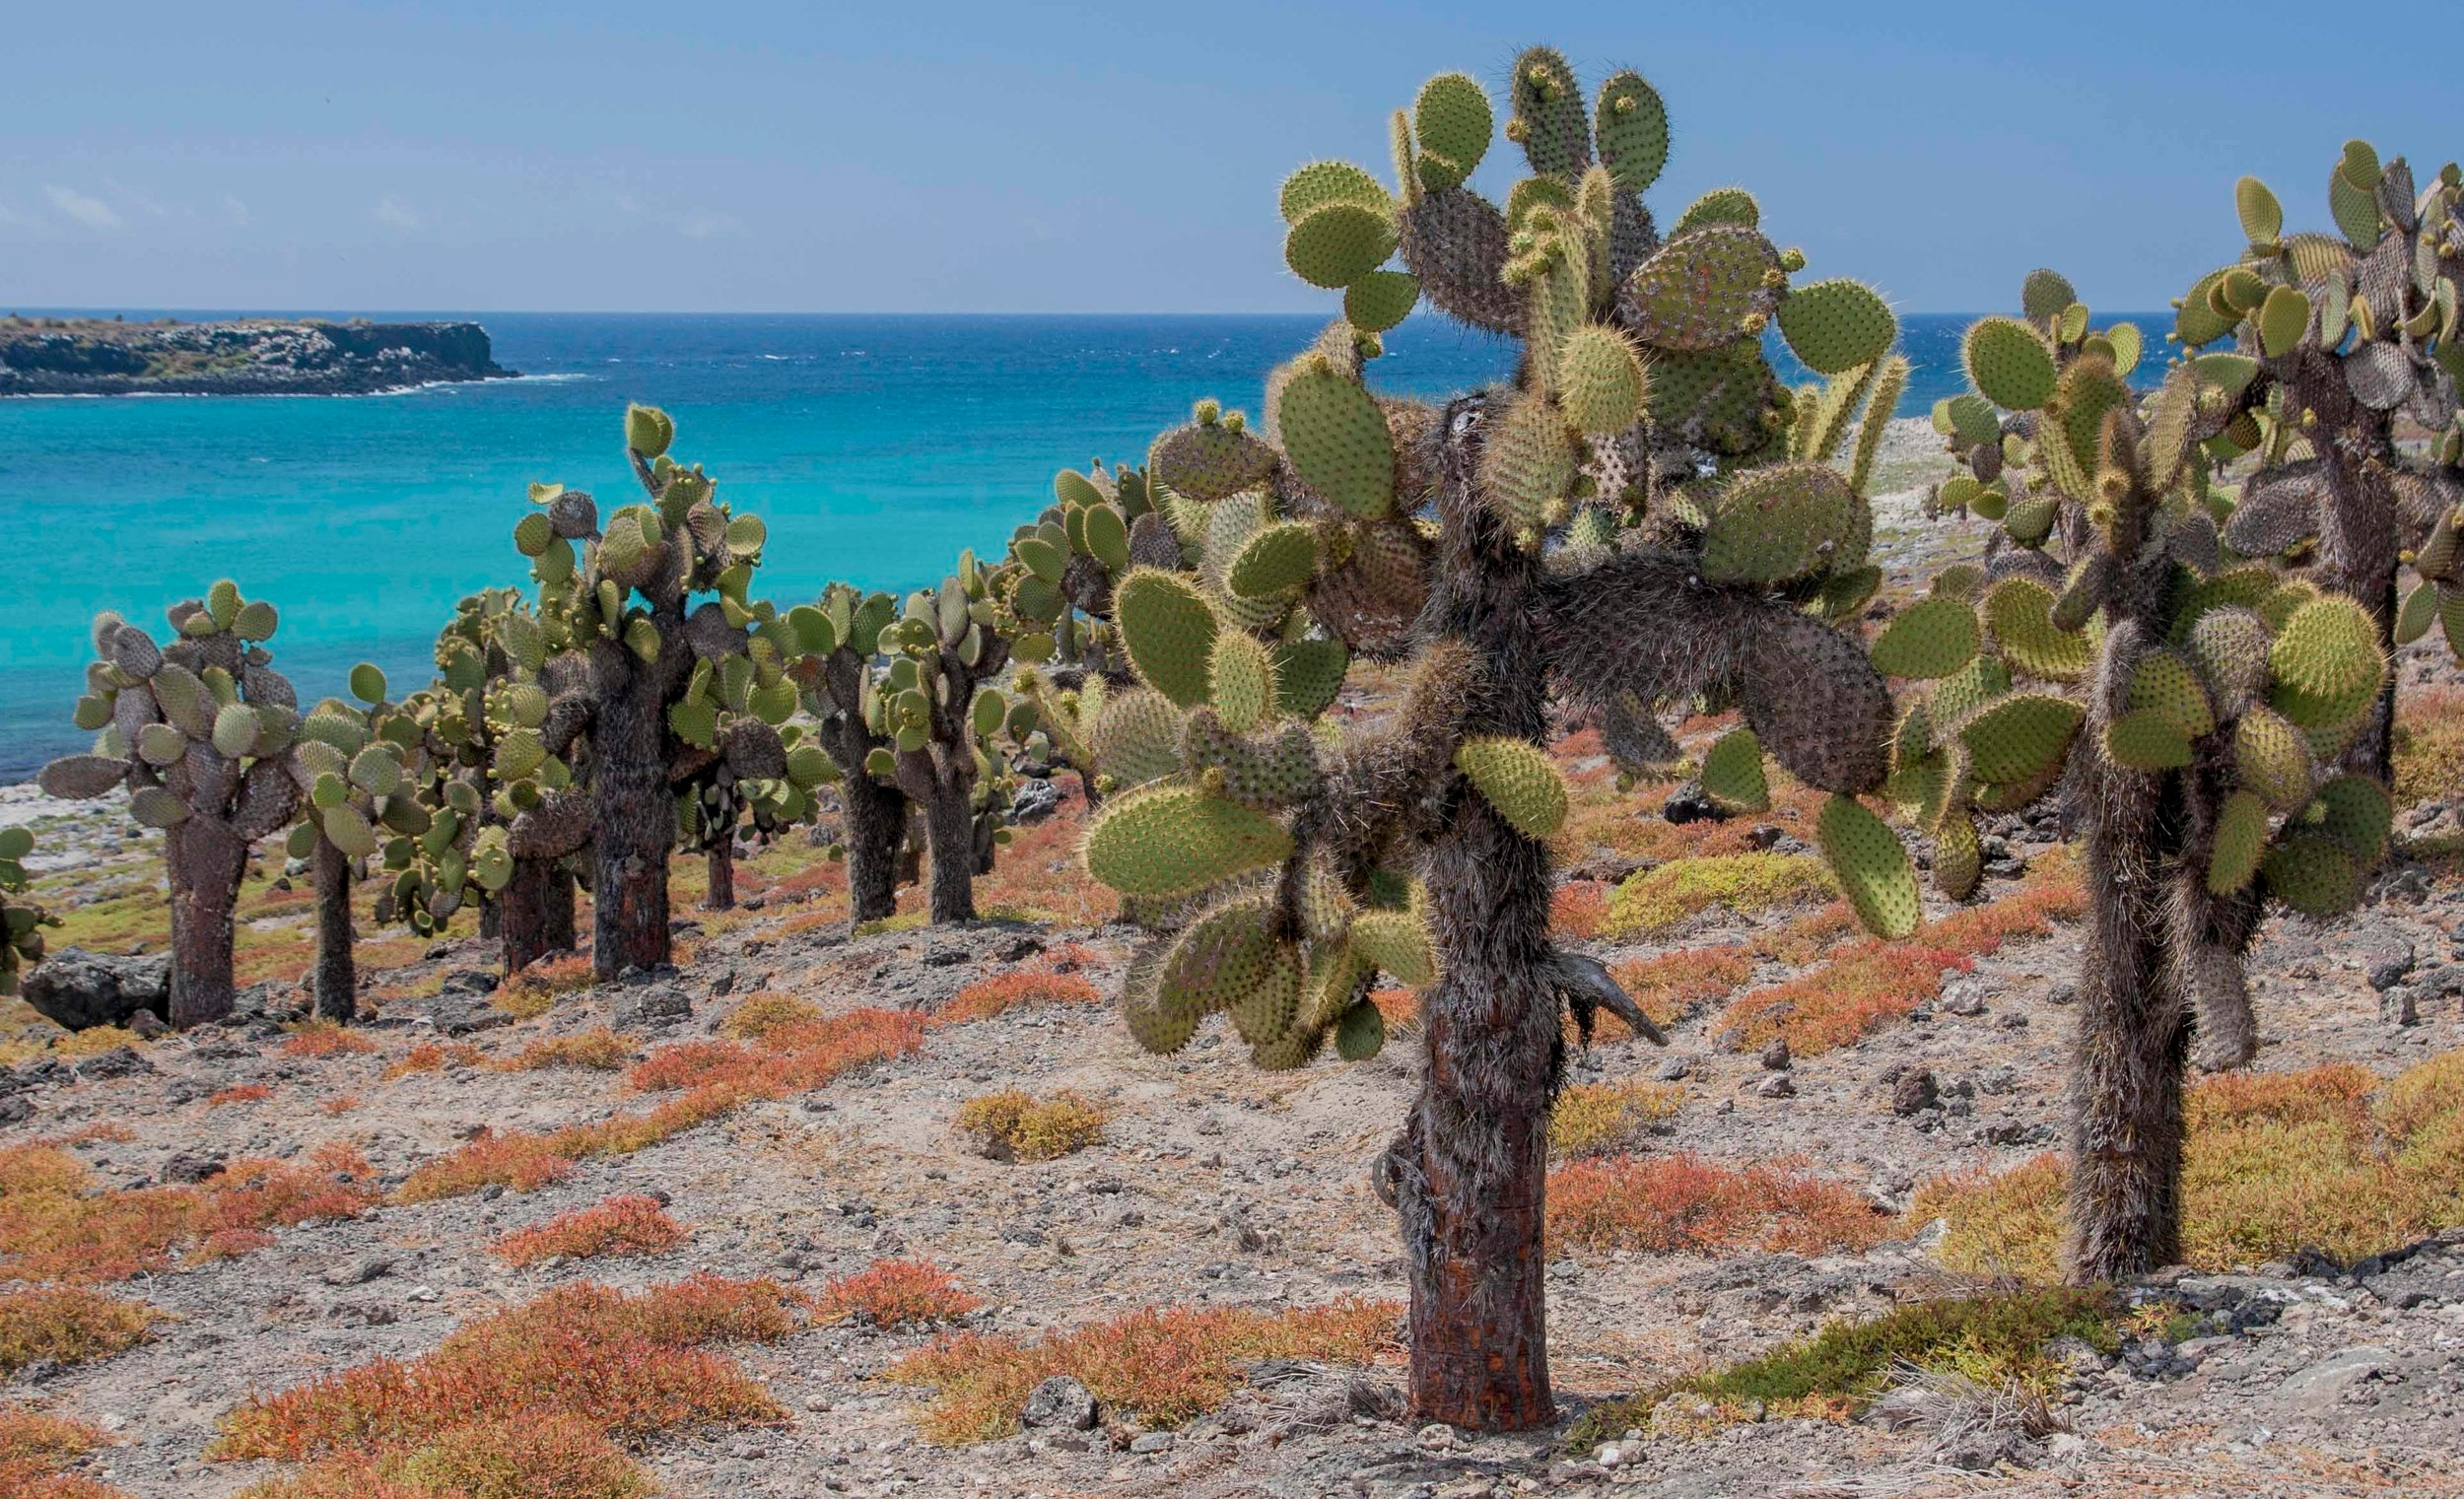 Giant  Opuntia  cacti, South Plaza Island, Galápagos